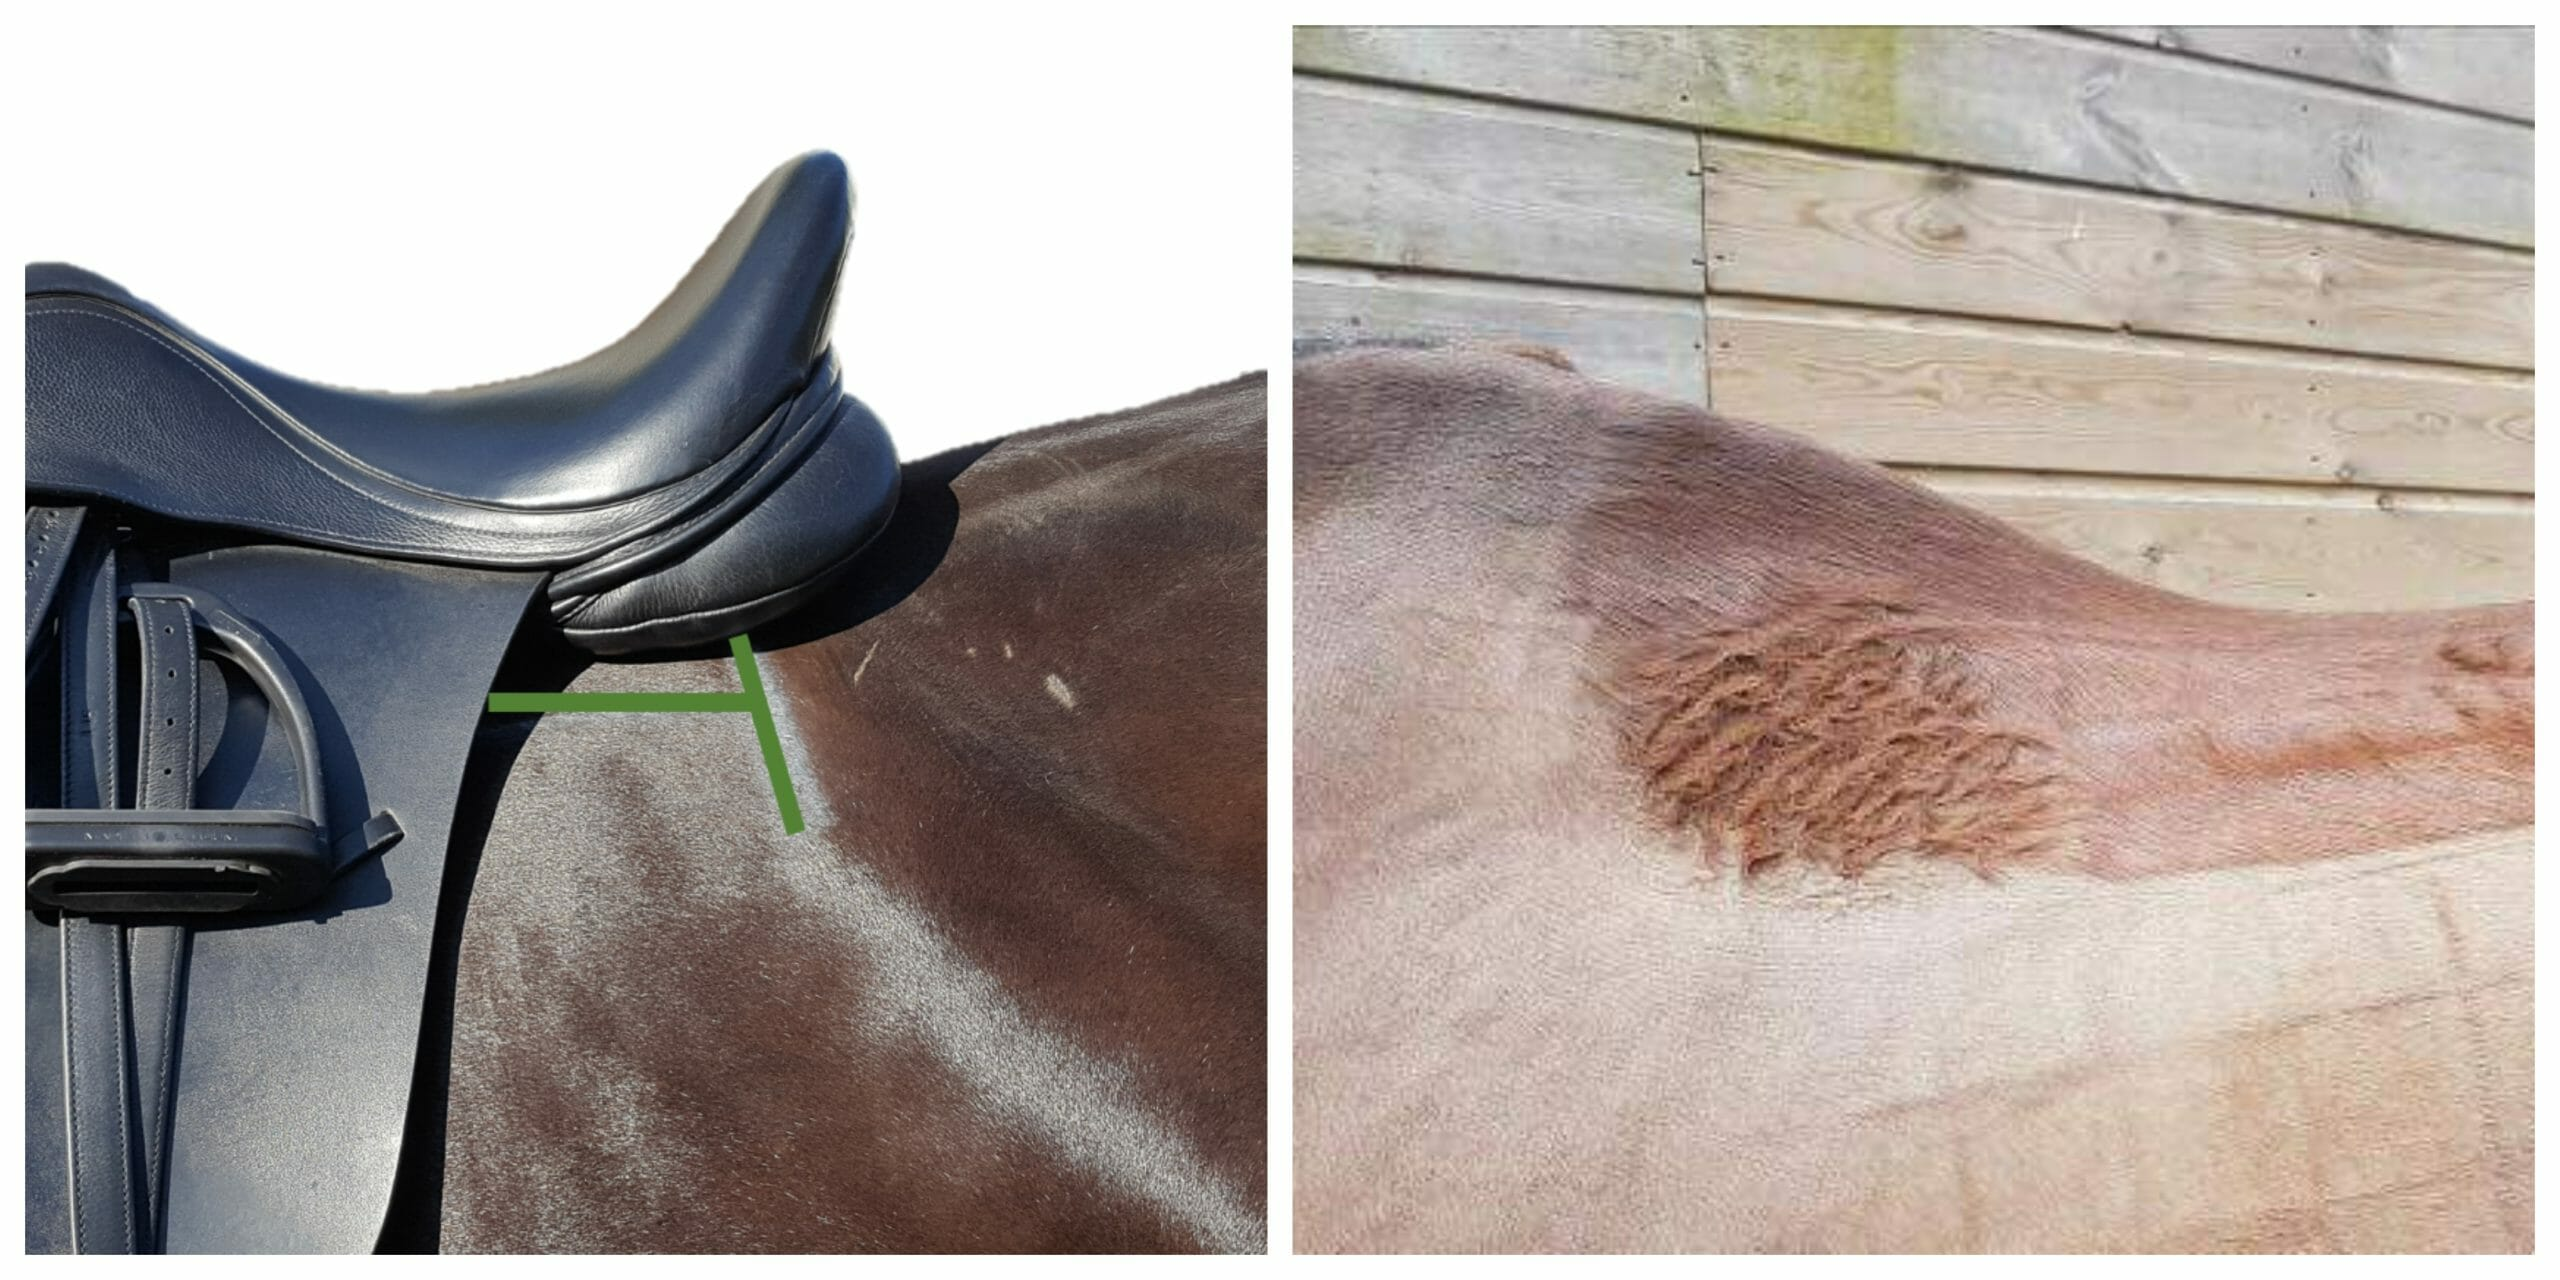 Saddle fit versus Saddle Fashion